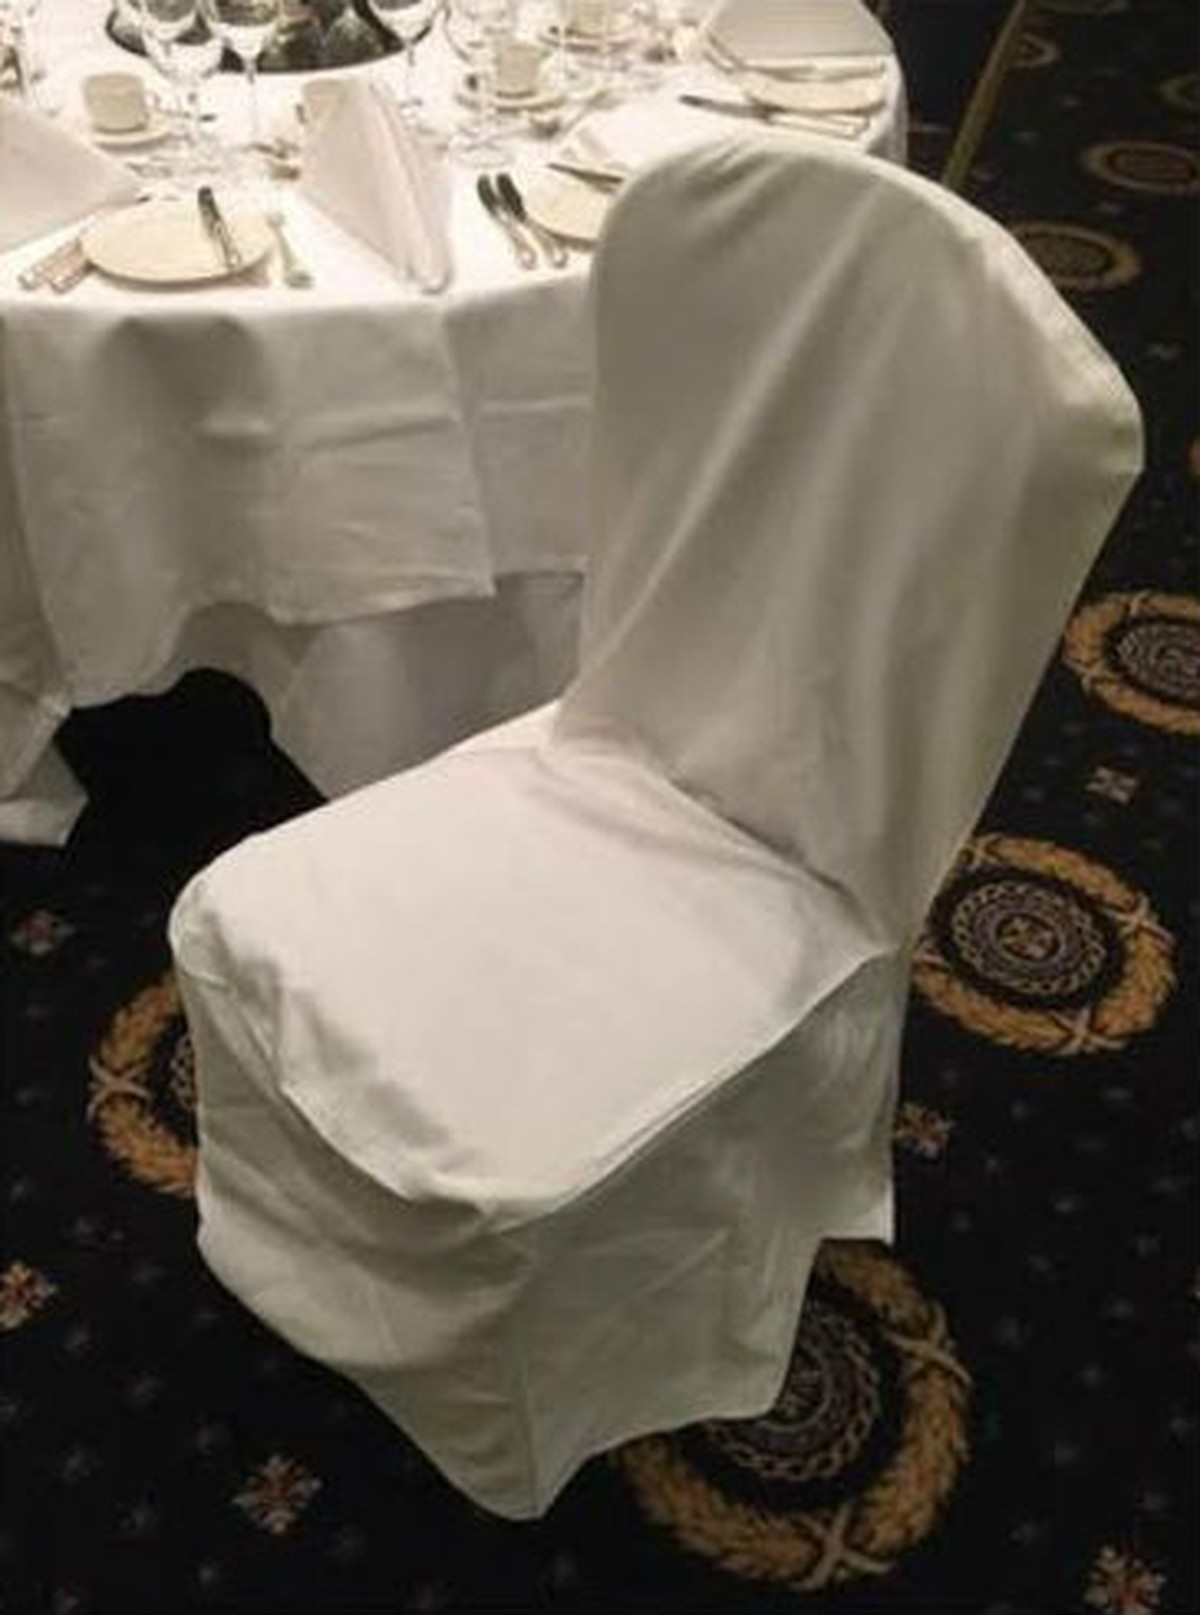 wedding chair covers chelmsford extra large bean bag chairs secondhand catering equipment table linen and decor